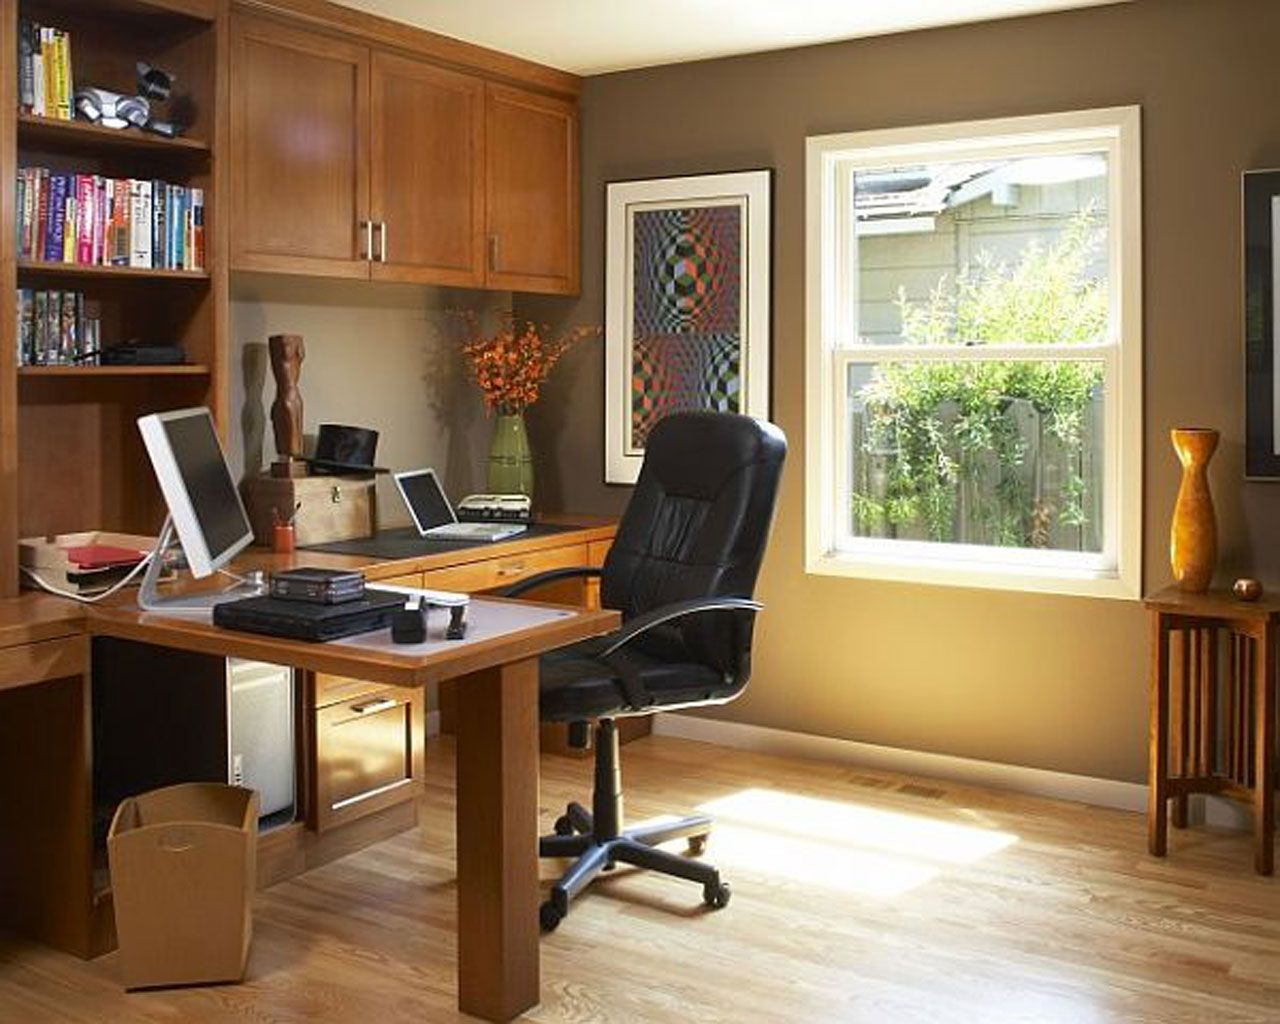 1000 images about home office on pinterest home office design office designs and l shaped office - Custom Home Office Designs